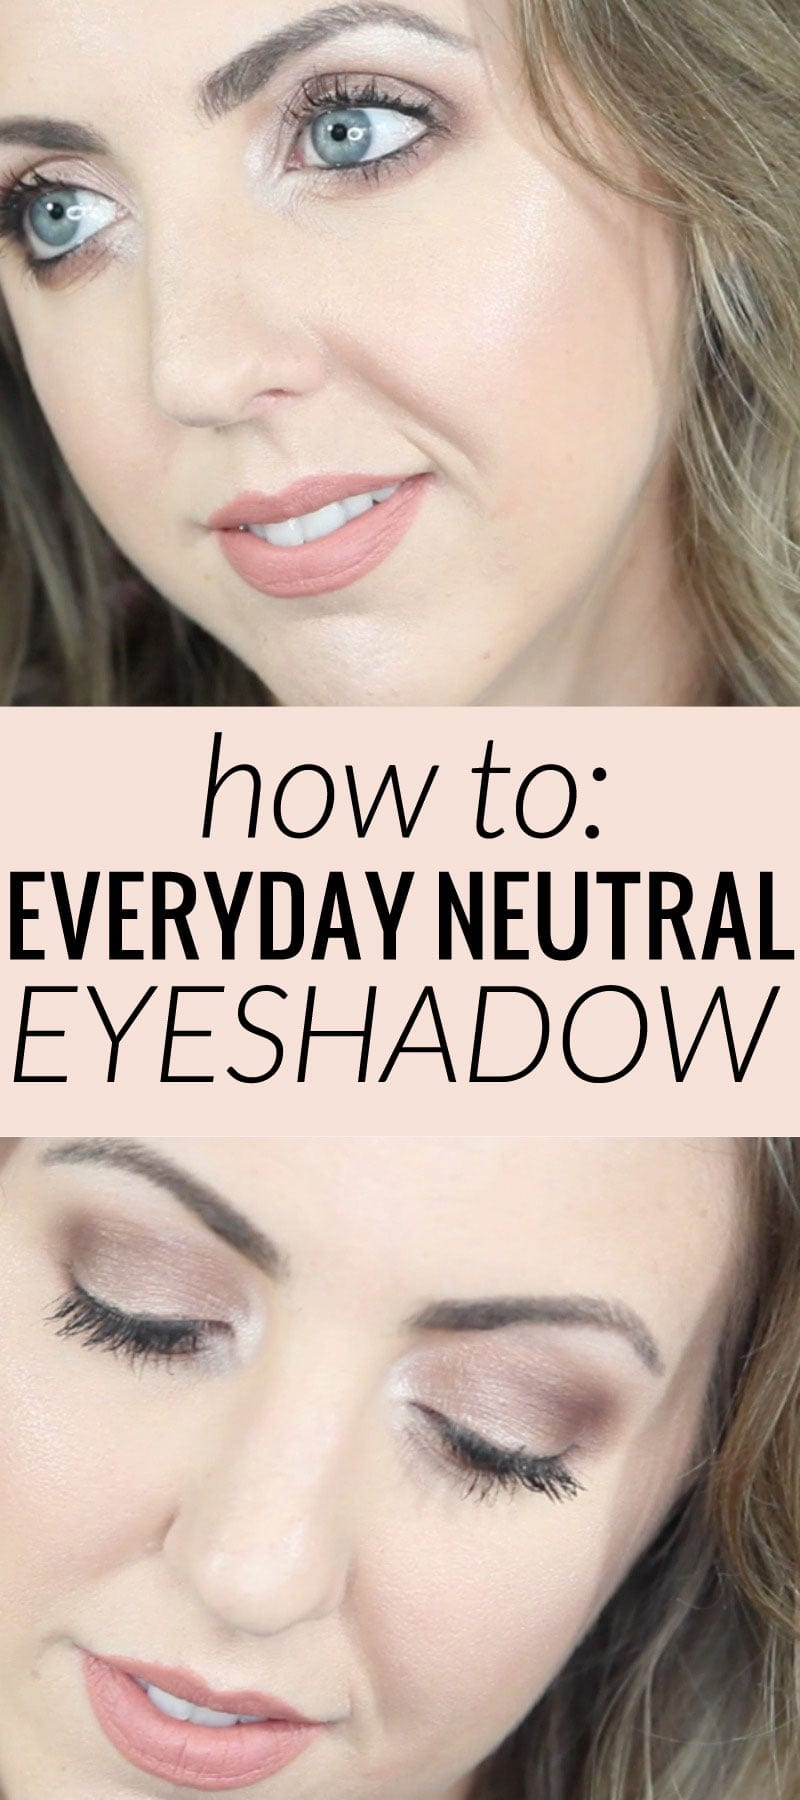 A simple and fresh everyday neutral eyeshadow look, perfect for work or school. Learn how to get this look!